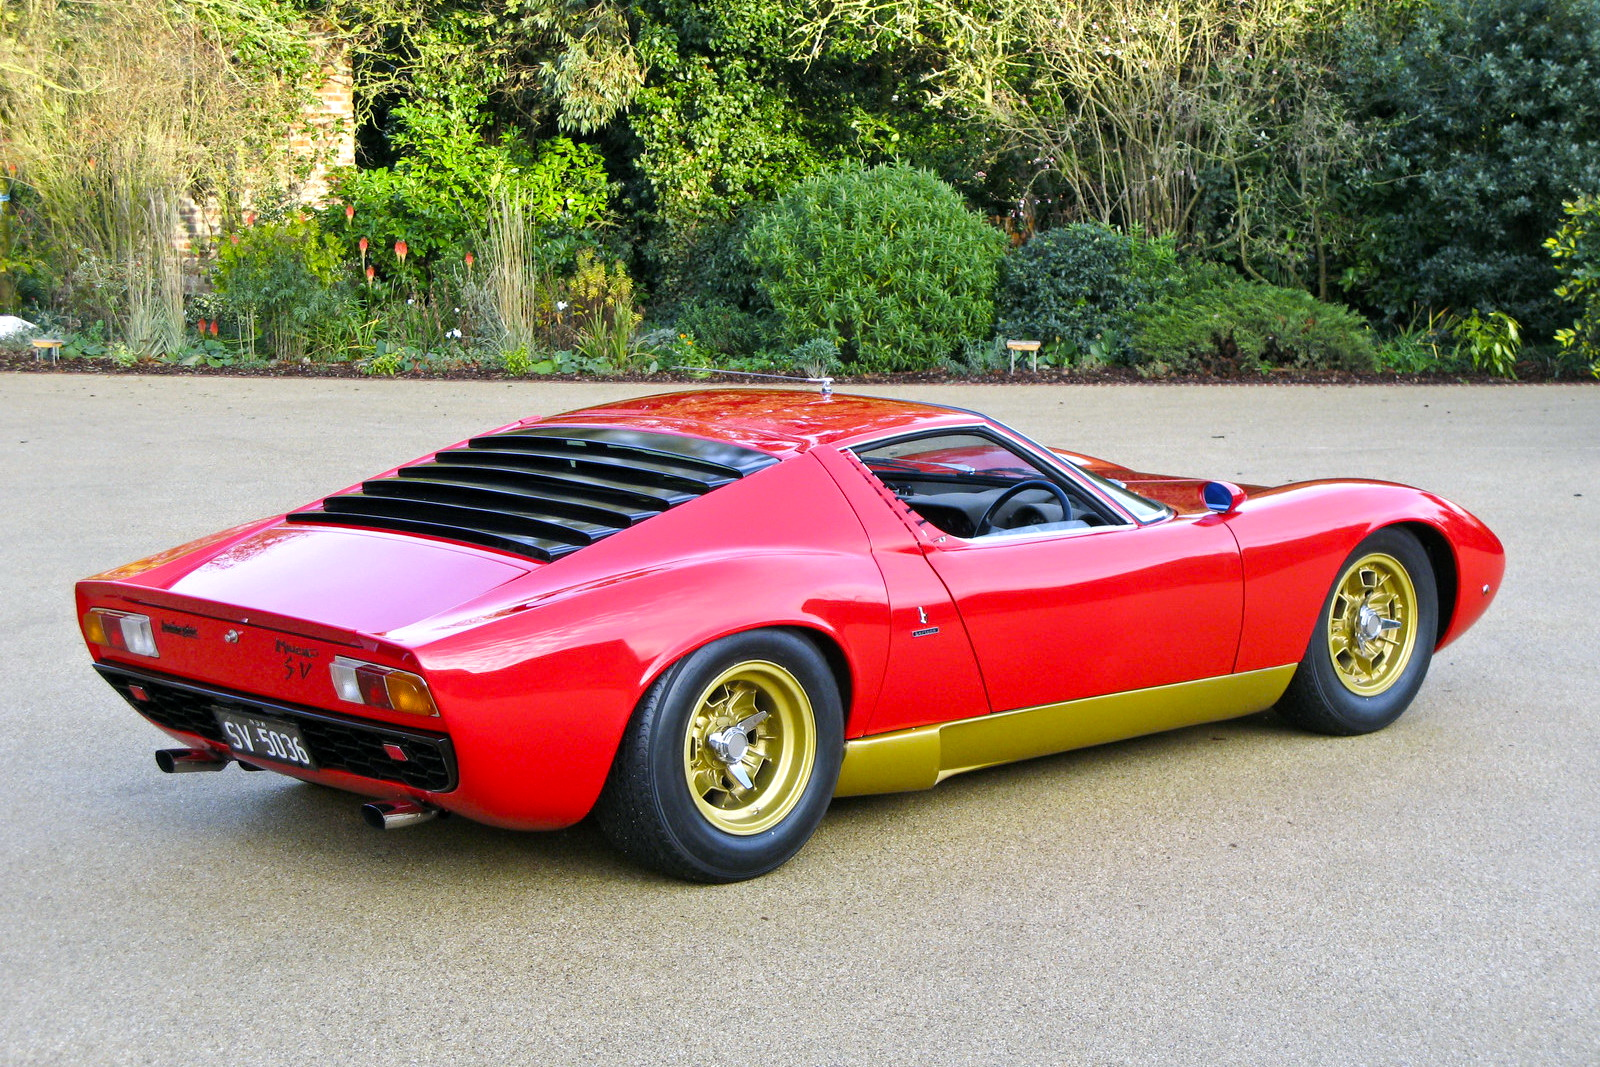 ... Miura Could Lose The Rear Window Slats. Oh... And Do The Wheels And  Rocker Panels In The Original Silver Instead Of The Gold Used On Later S  Versions.